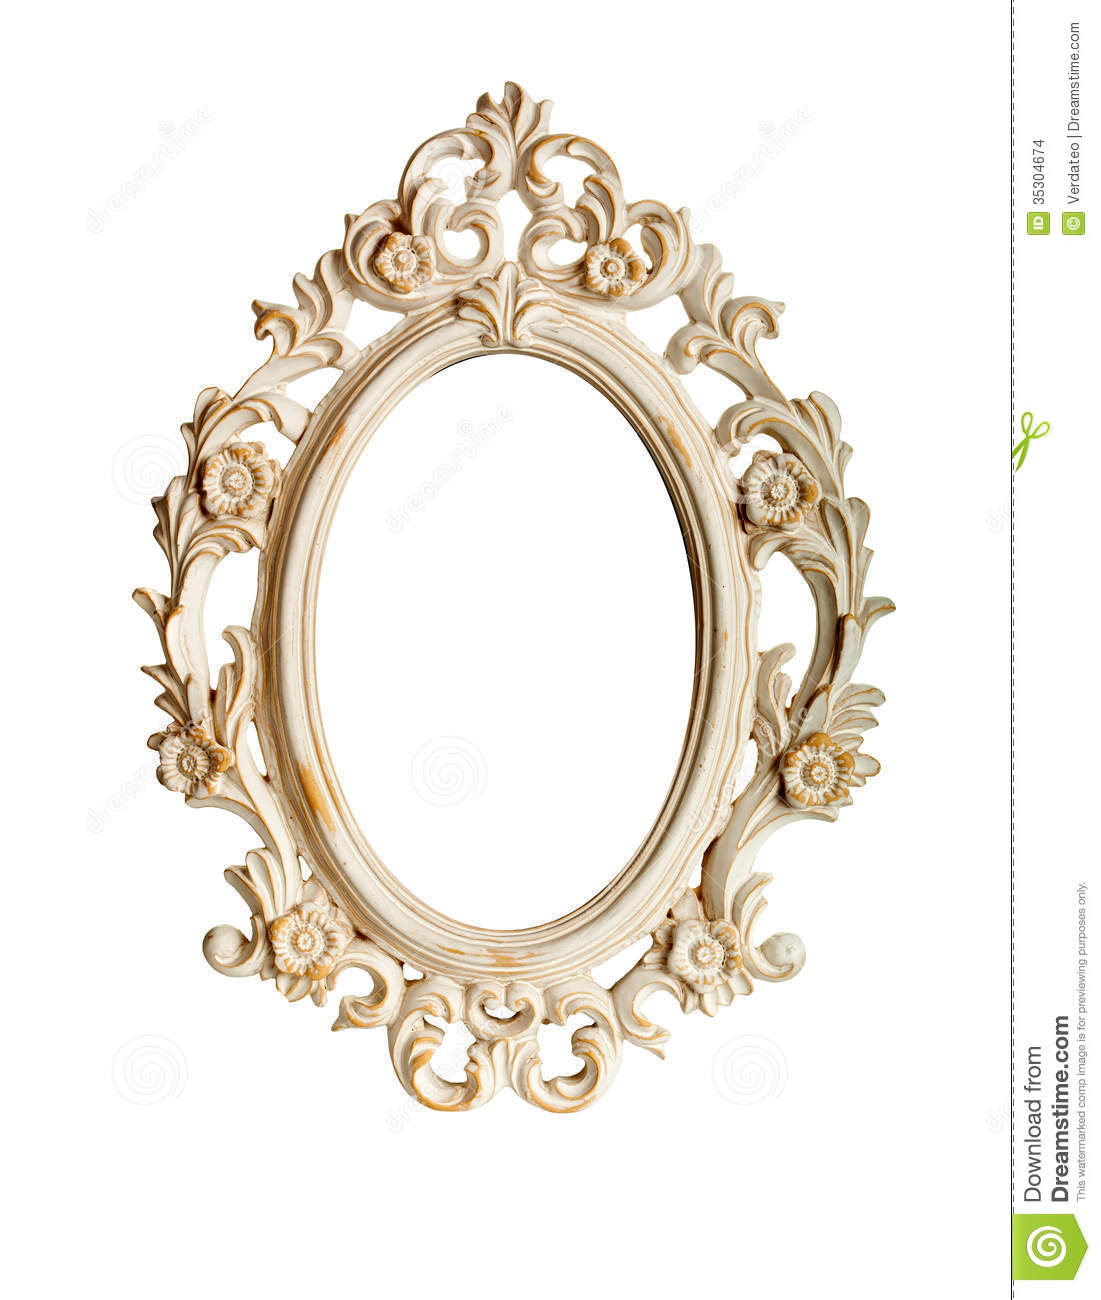 Oval ornate vintage frame isolated over white background.